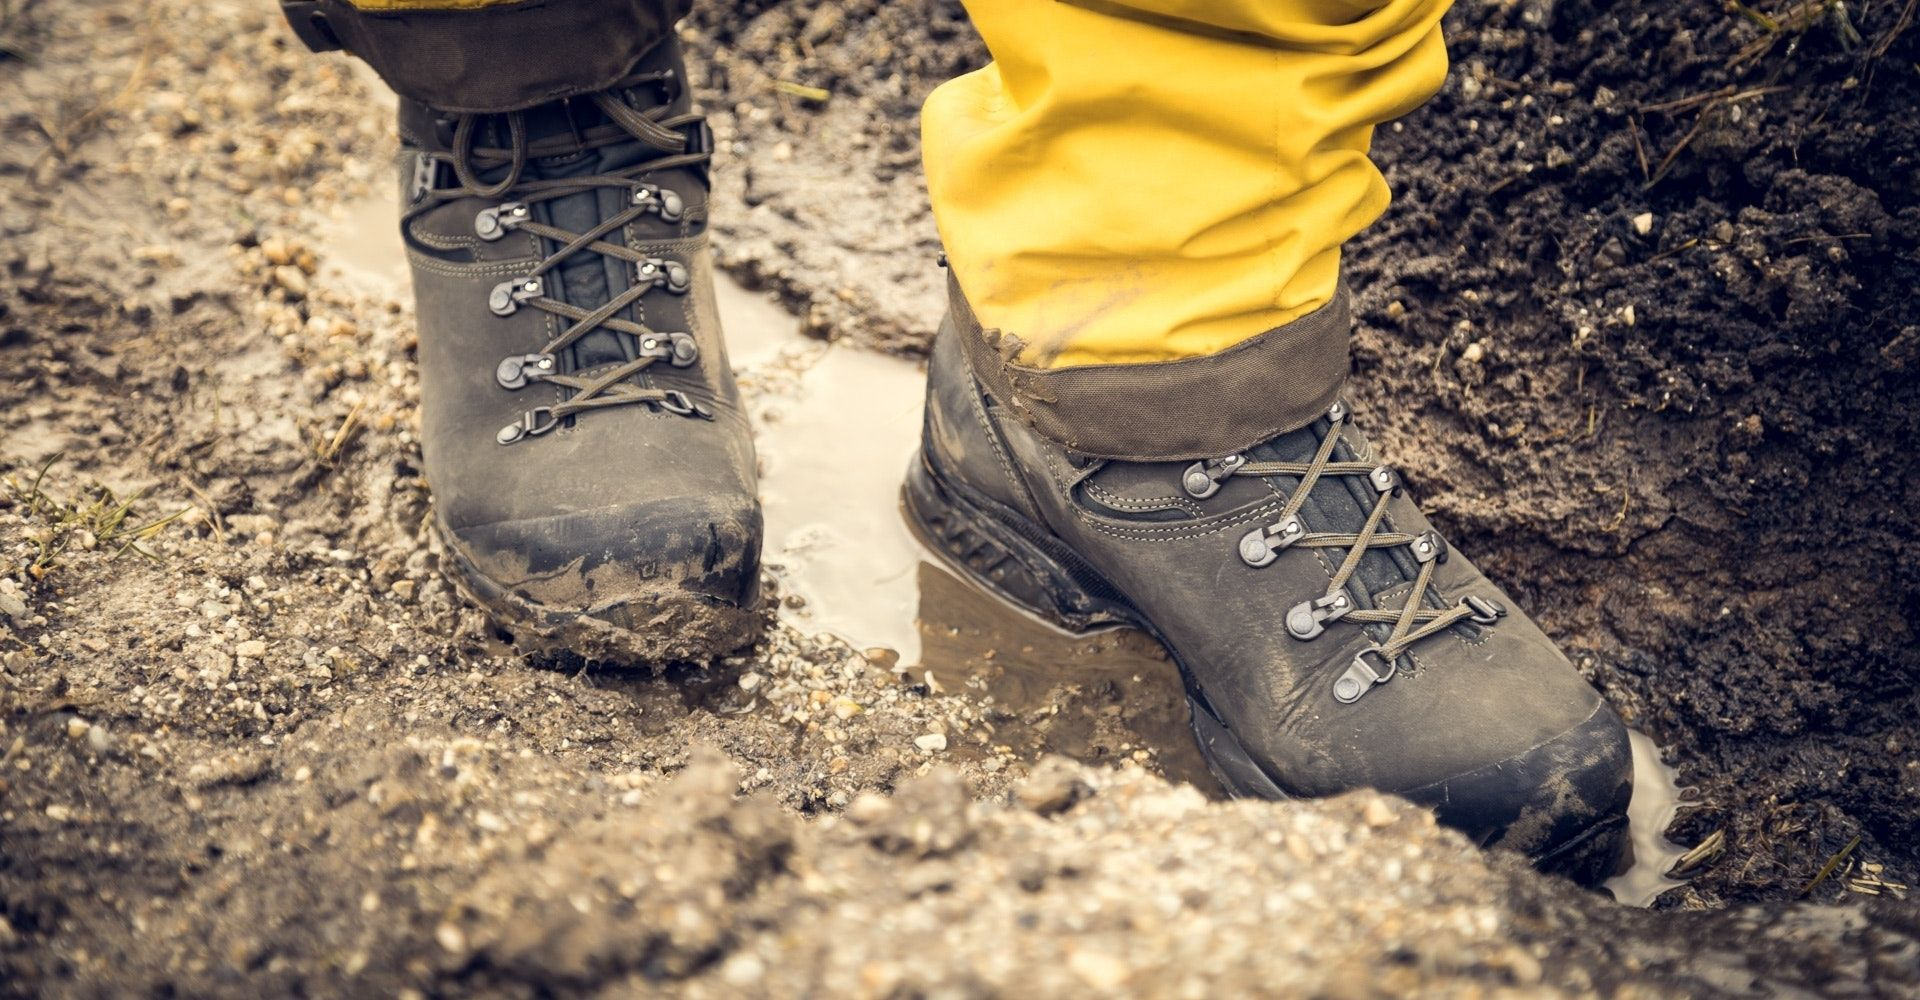 self catering holiday packing list - hiking boots